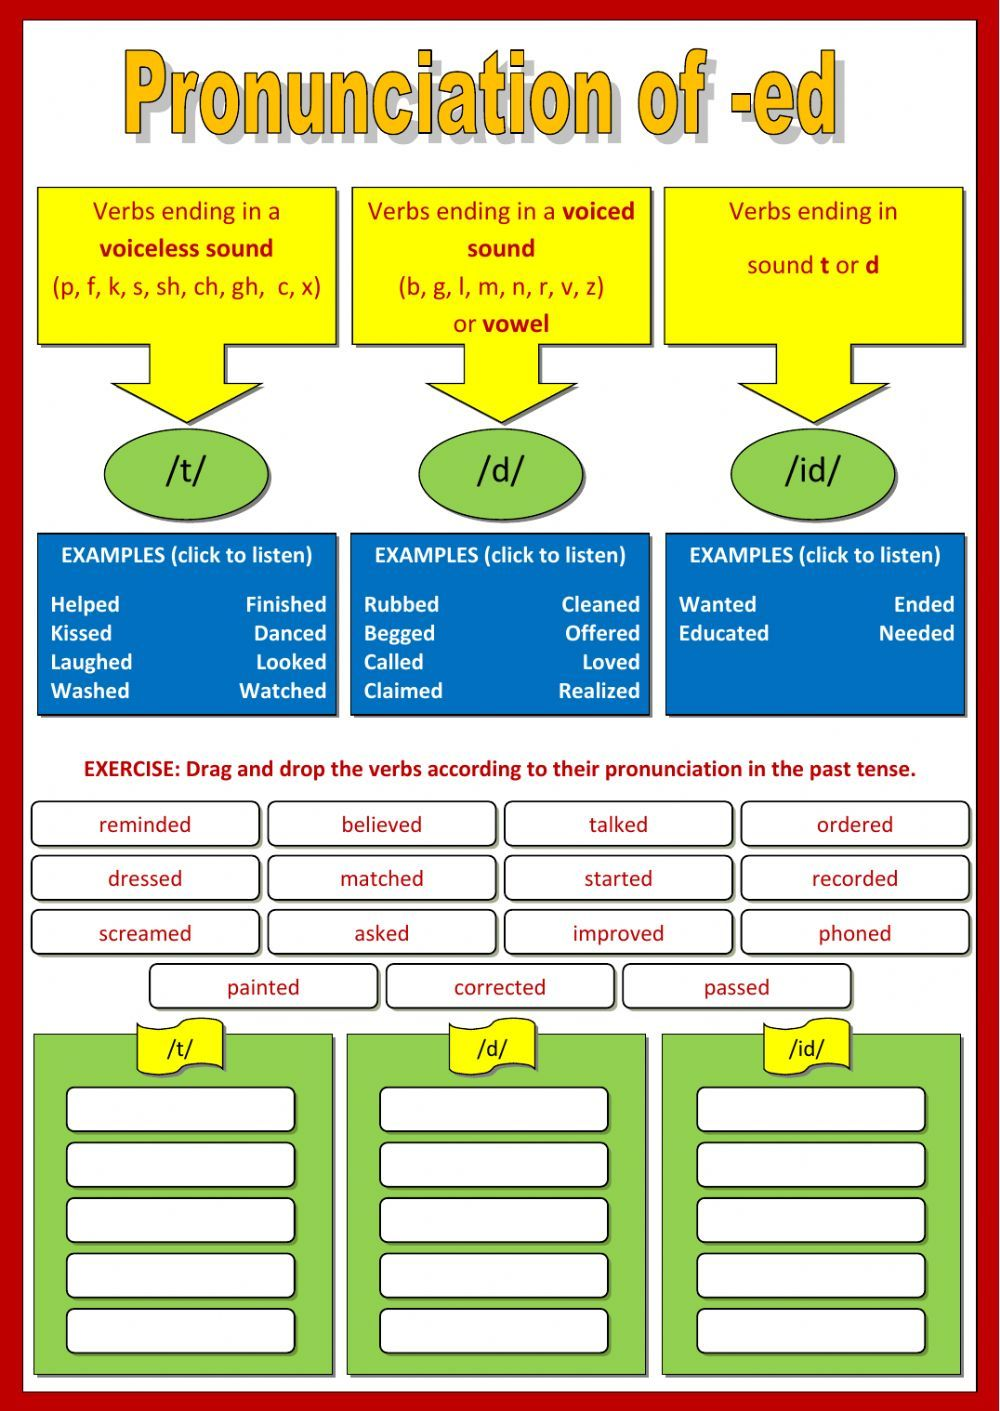 Pronunciation interactive and downloadable worksheet. You